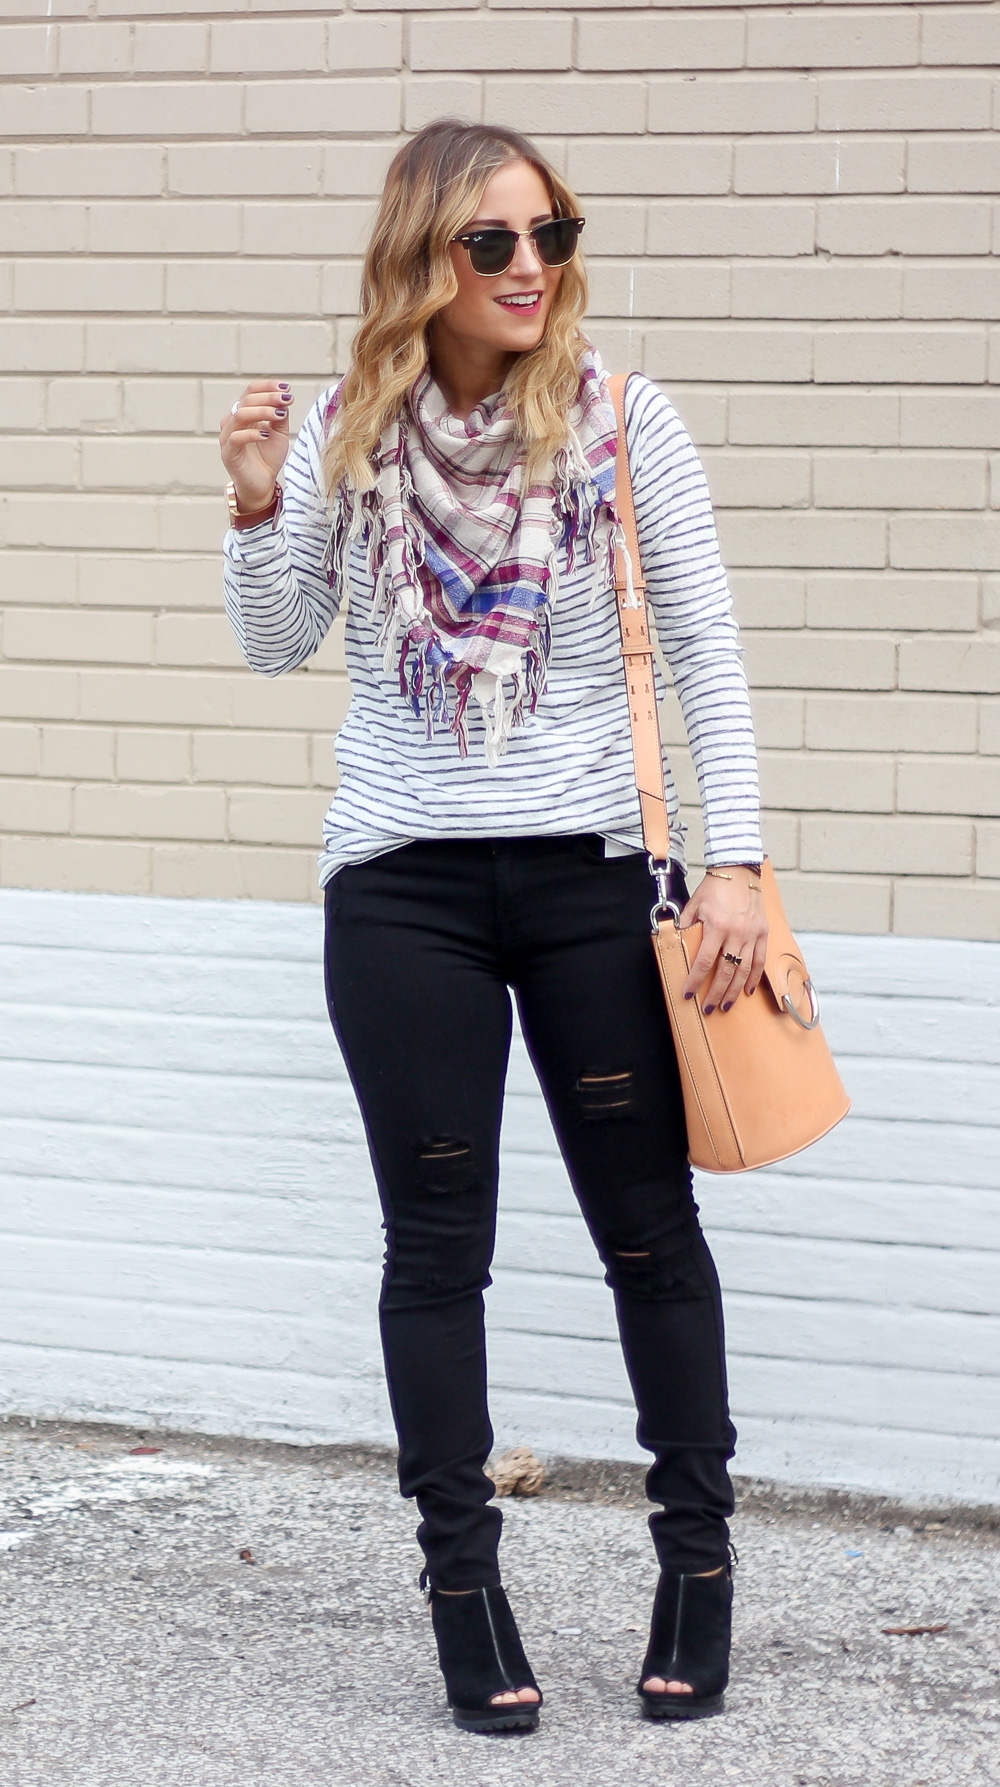 Easy Fall Outfit Idea for Gloomy Weather